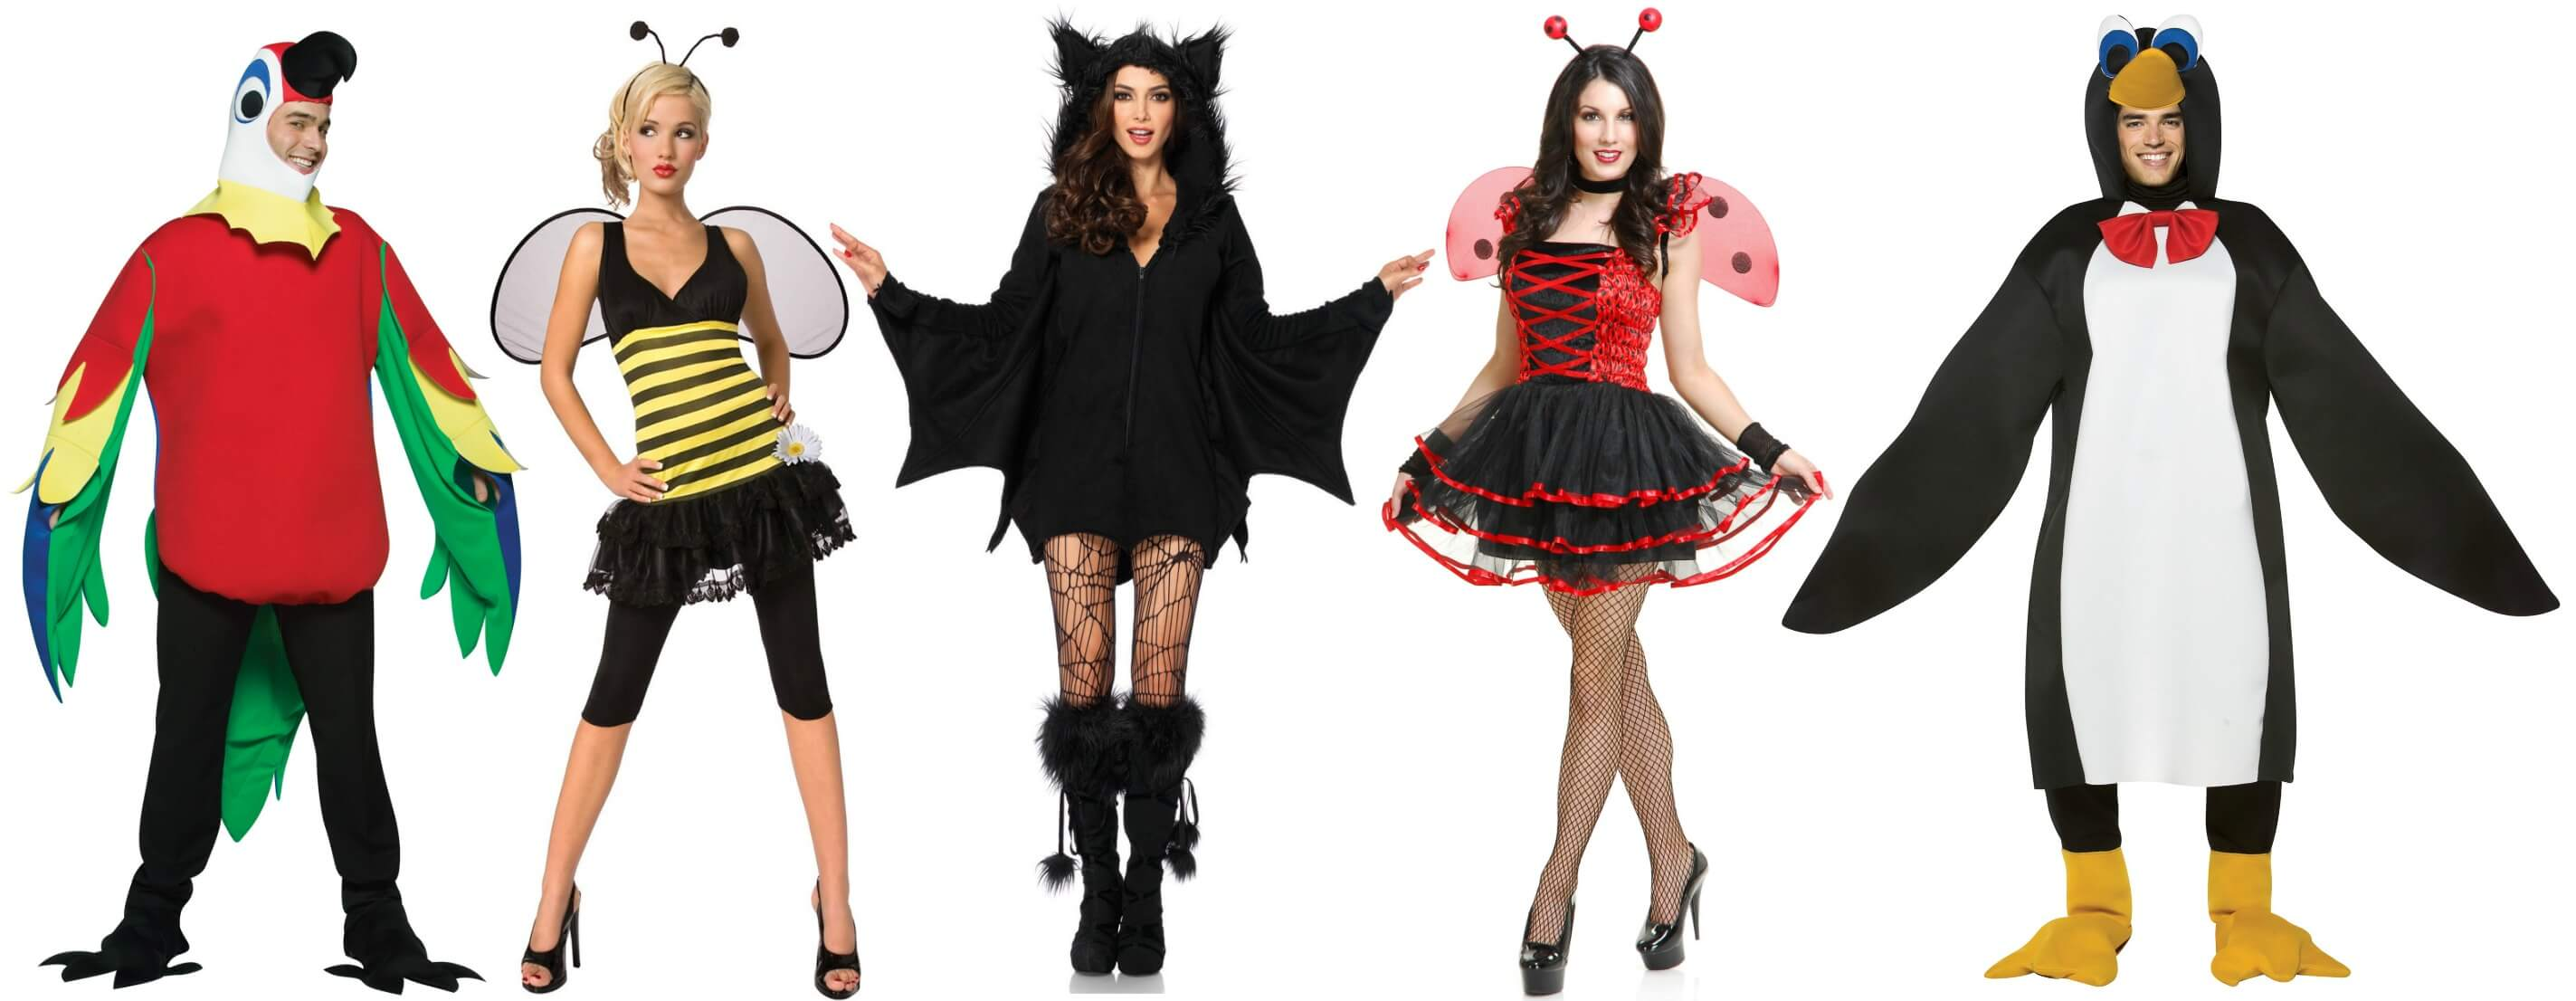 winged costumes for the party animal